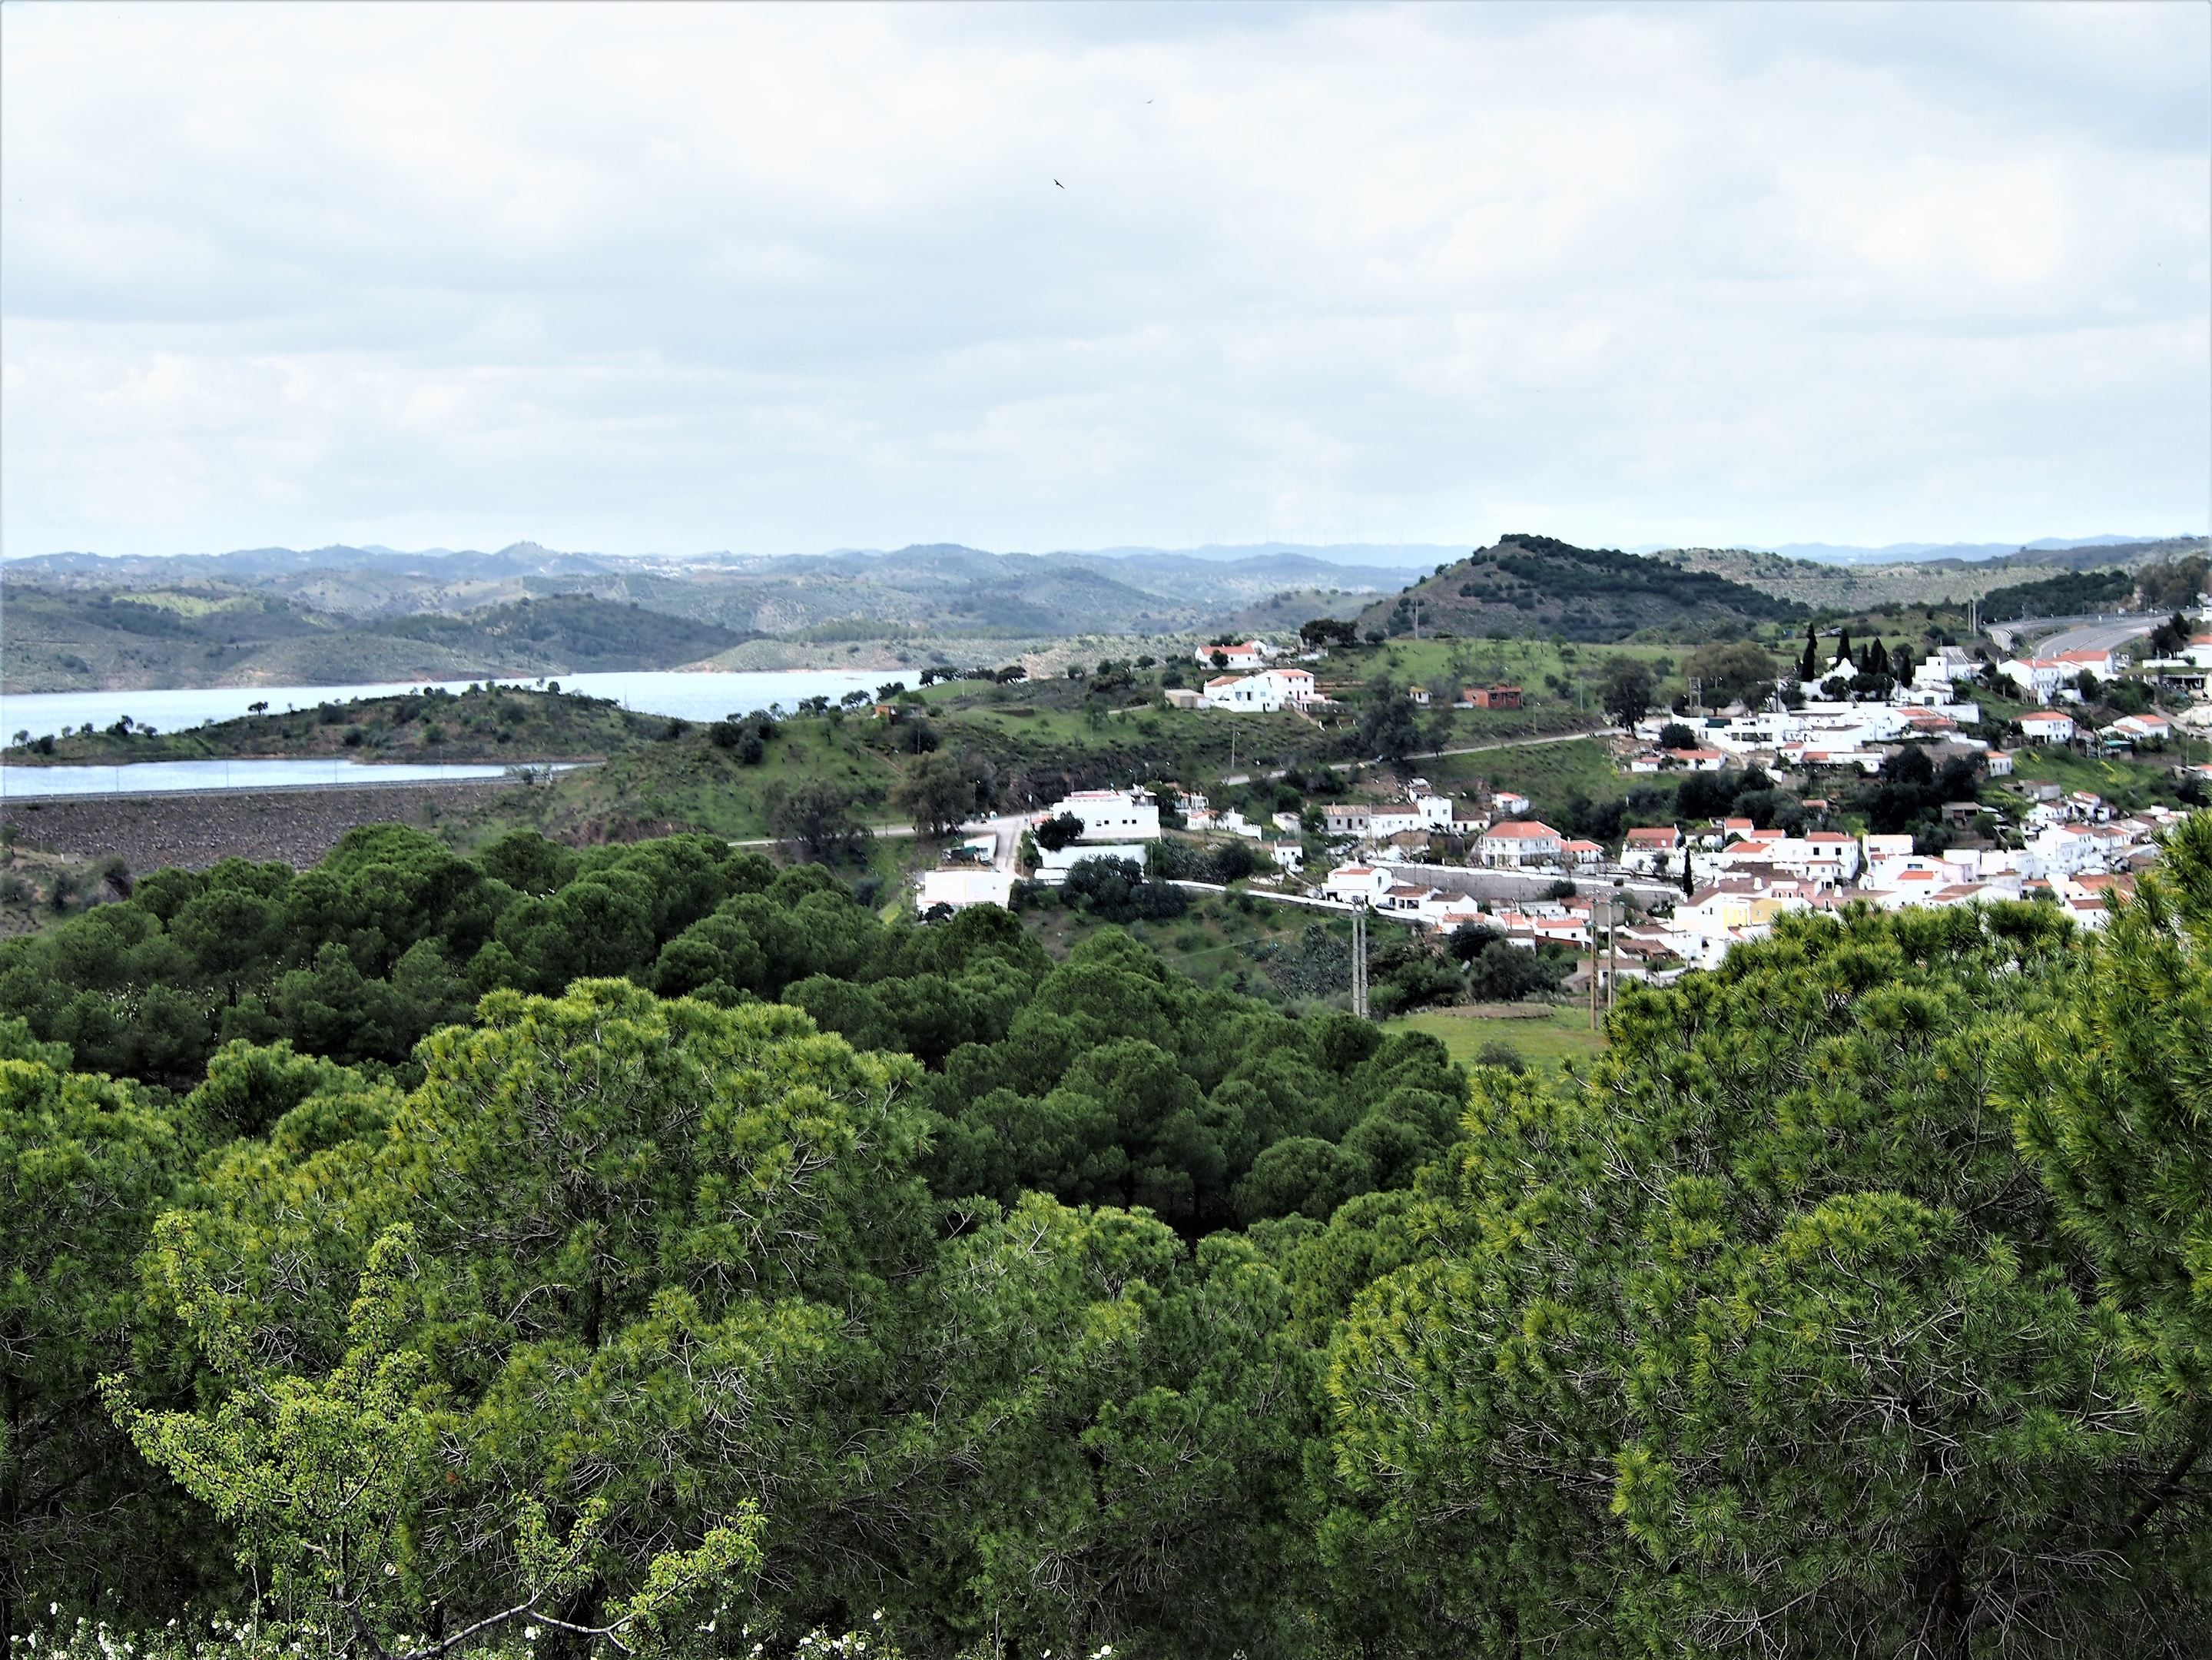 Barragem de Odeleite or the Odeleite Dam, with the village of Odeleite on the right side of the picture